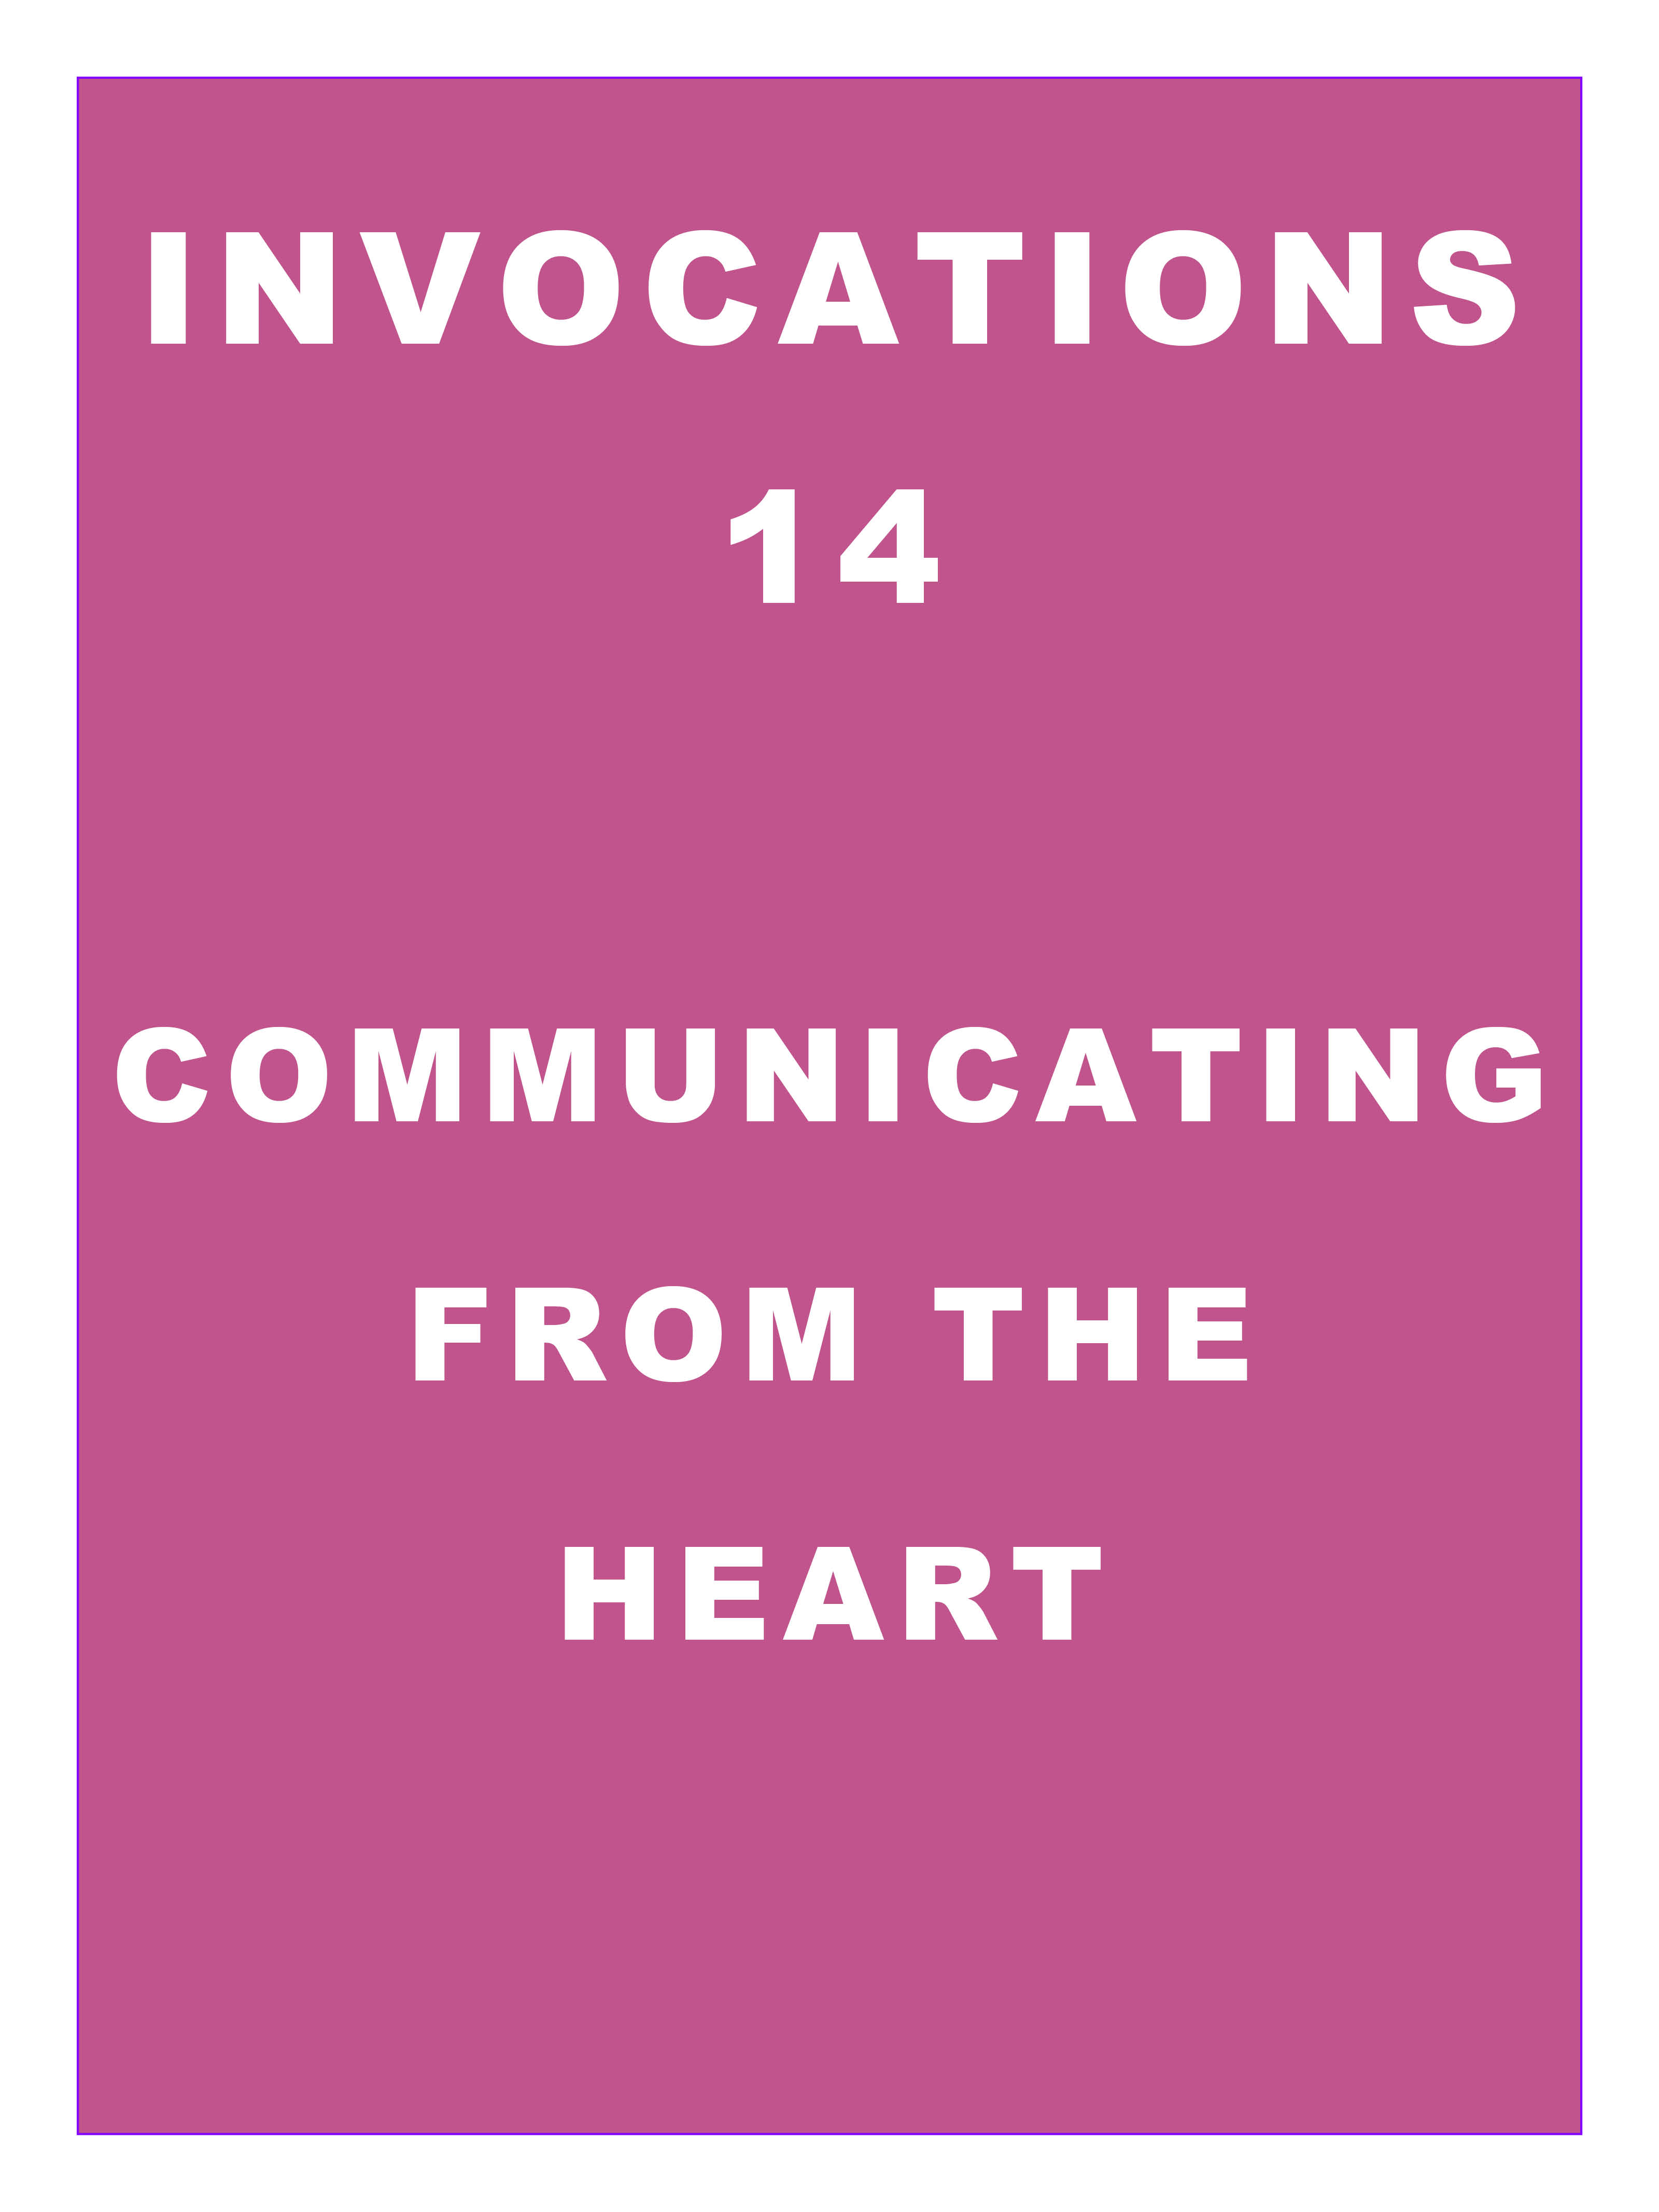 Invocations 14: Communicating from the Heart